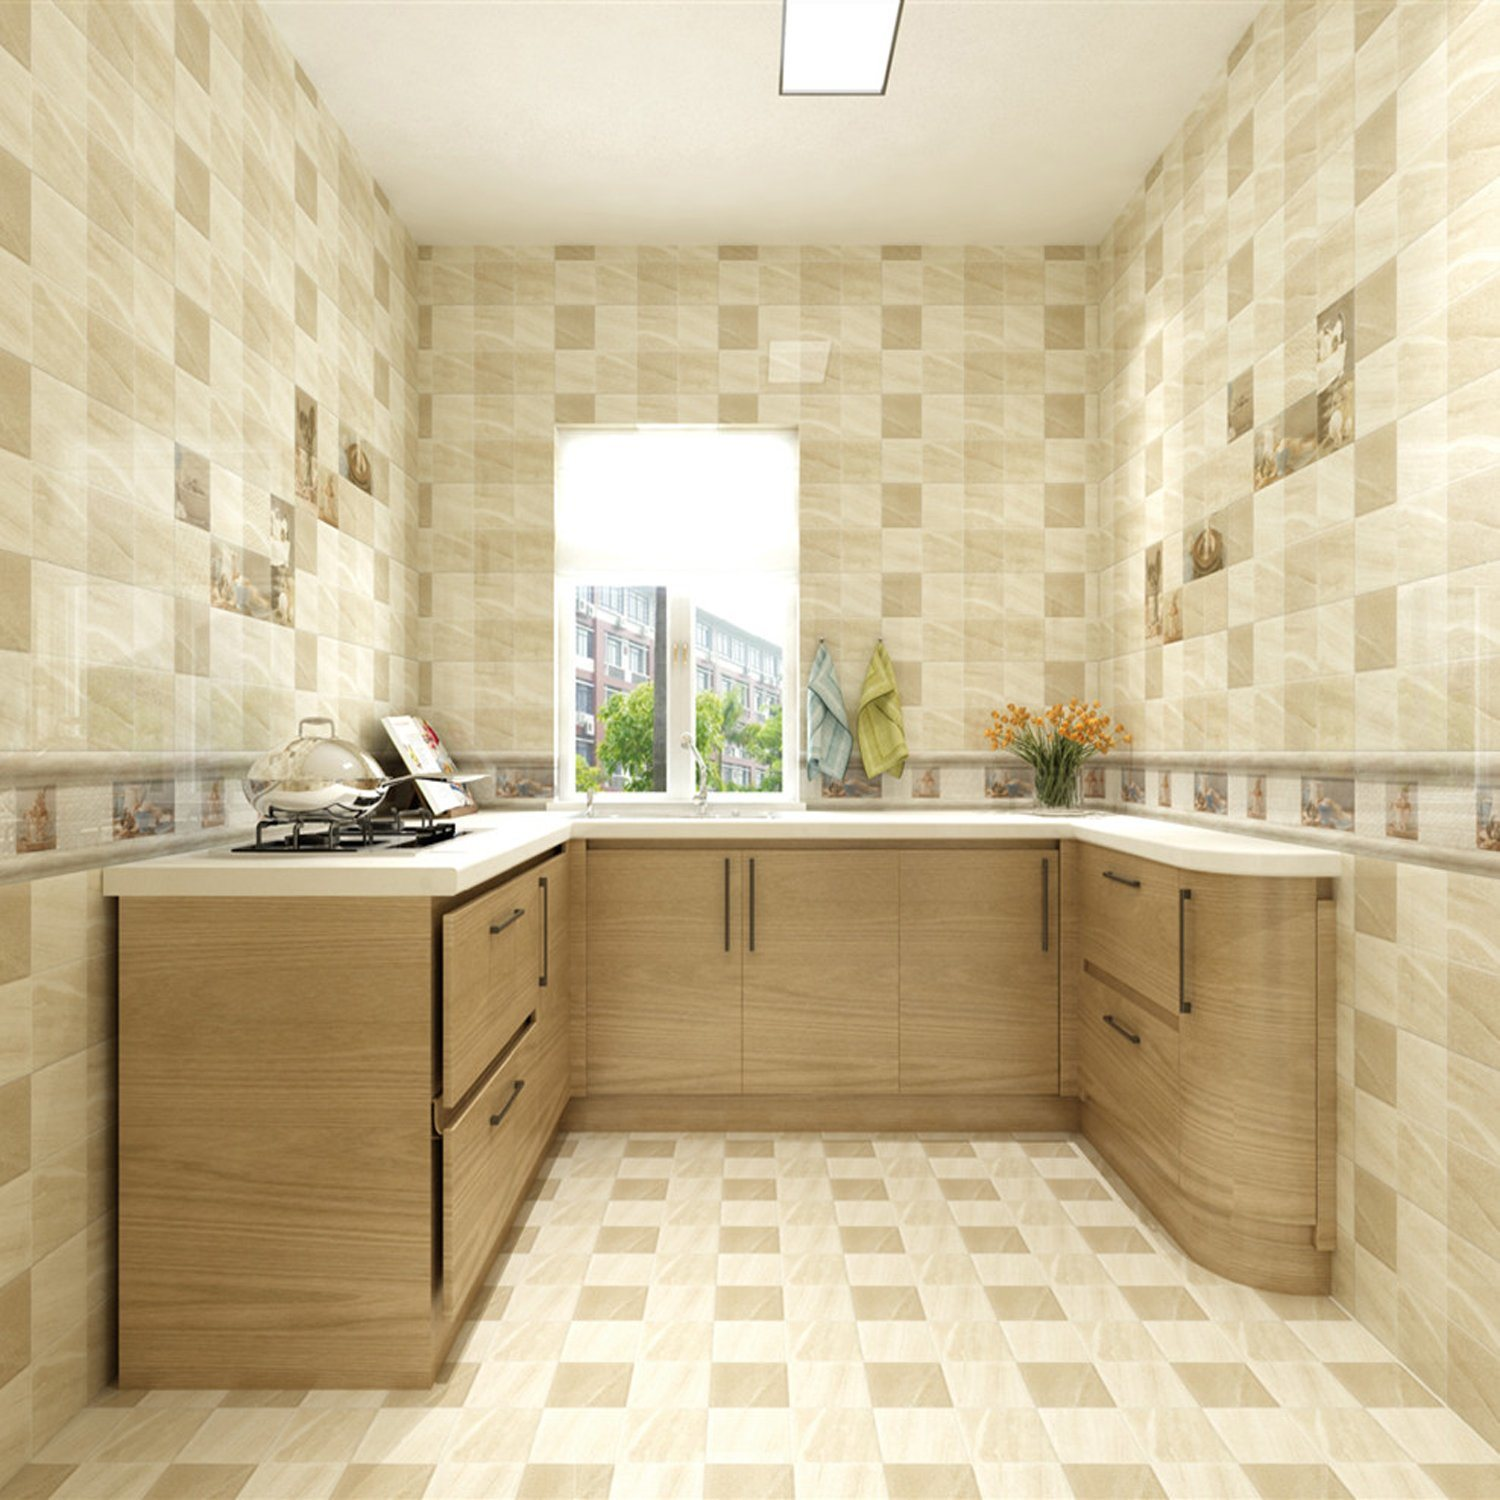 Images Of Wall Tiles For Kitchen Rumah Joglo Limasan Work